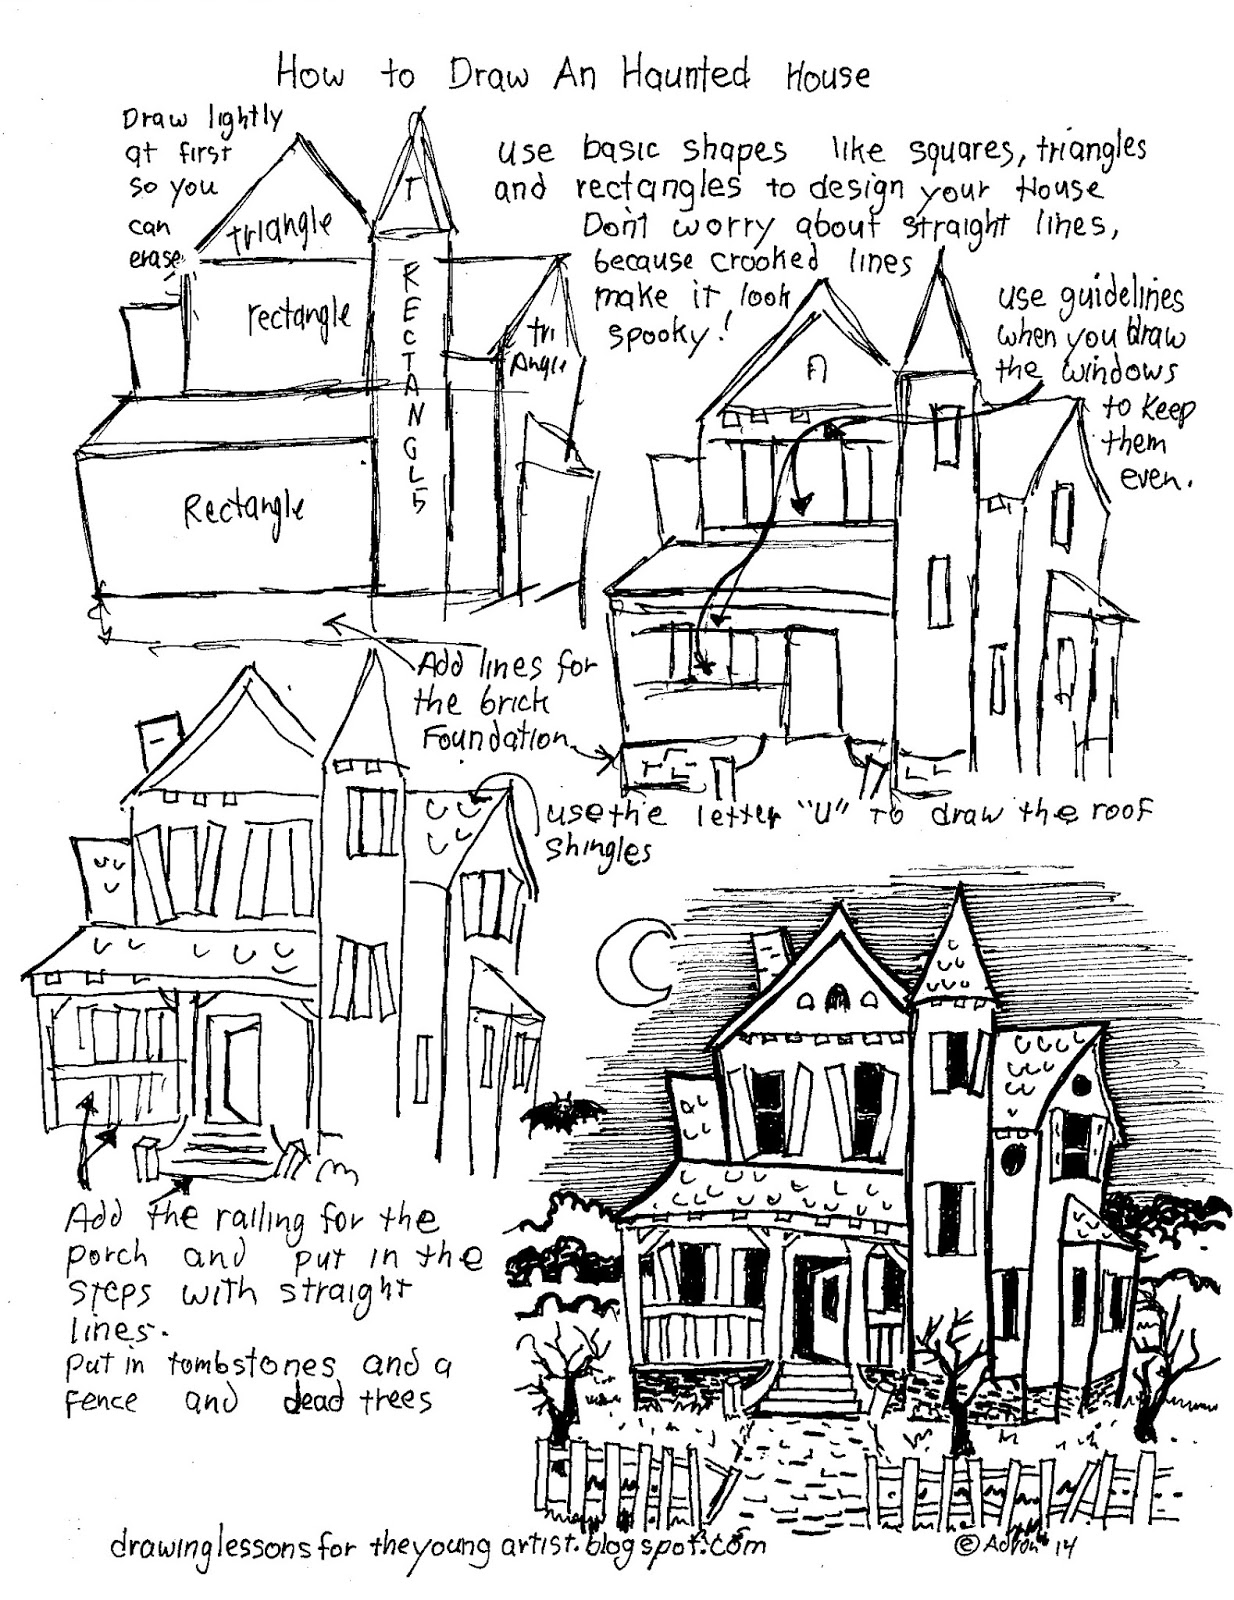 How to draw worksheets for the young artist how to draw a haunted printable how to draw a haunted house worksheet robcynllc Choice Image